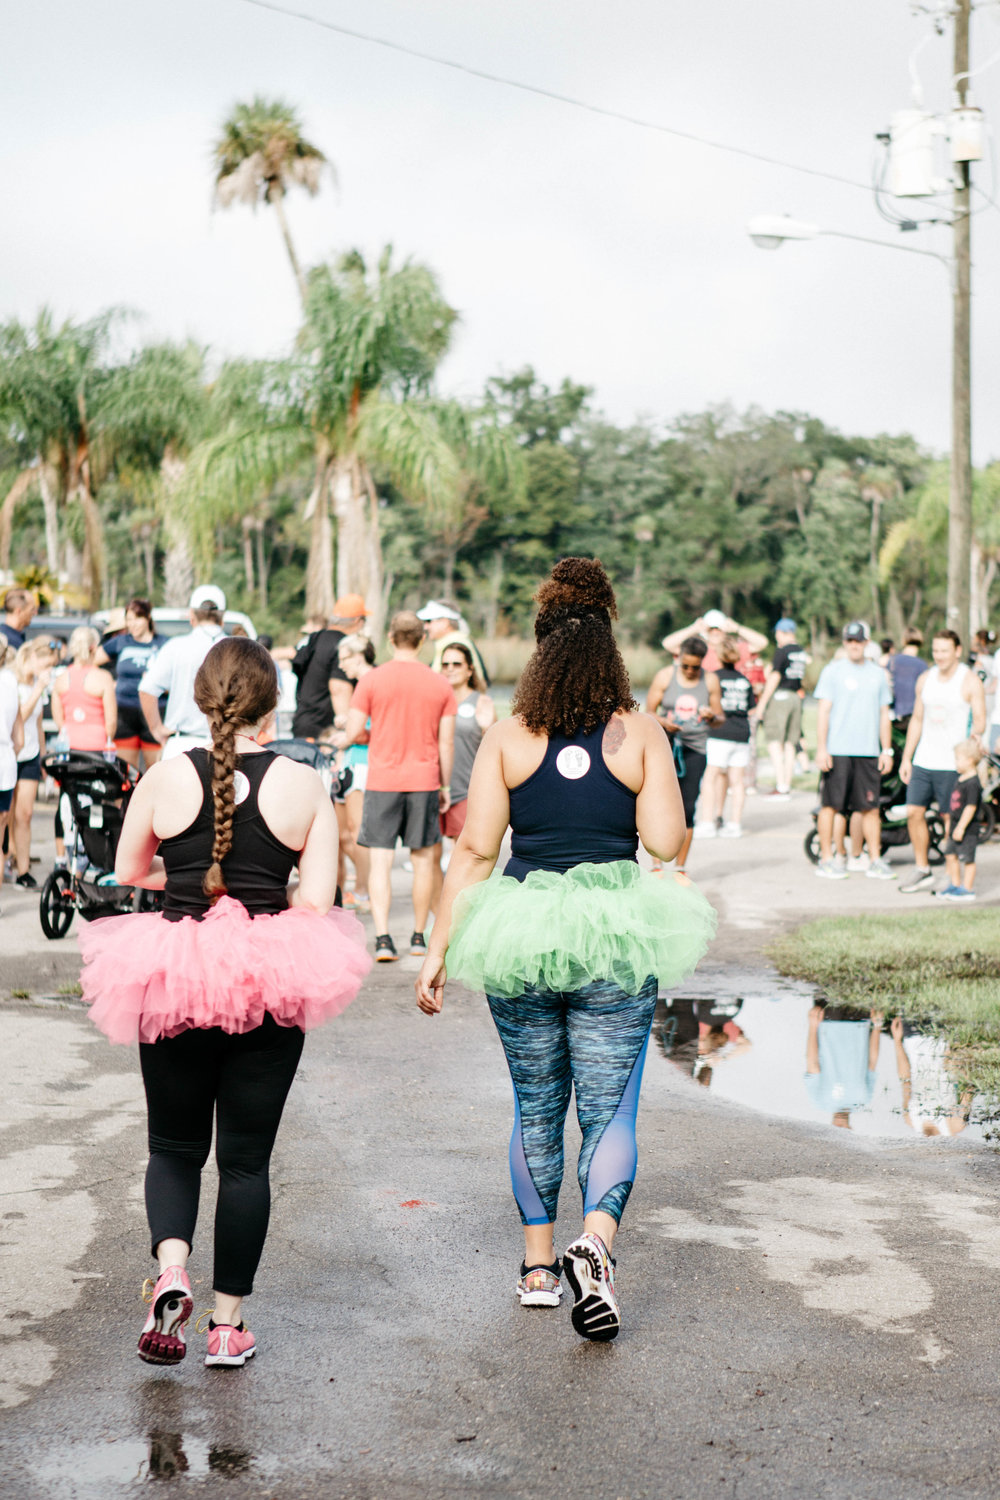 annas_foundation_manatee_run-10.jpg